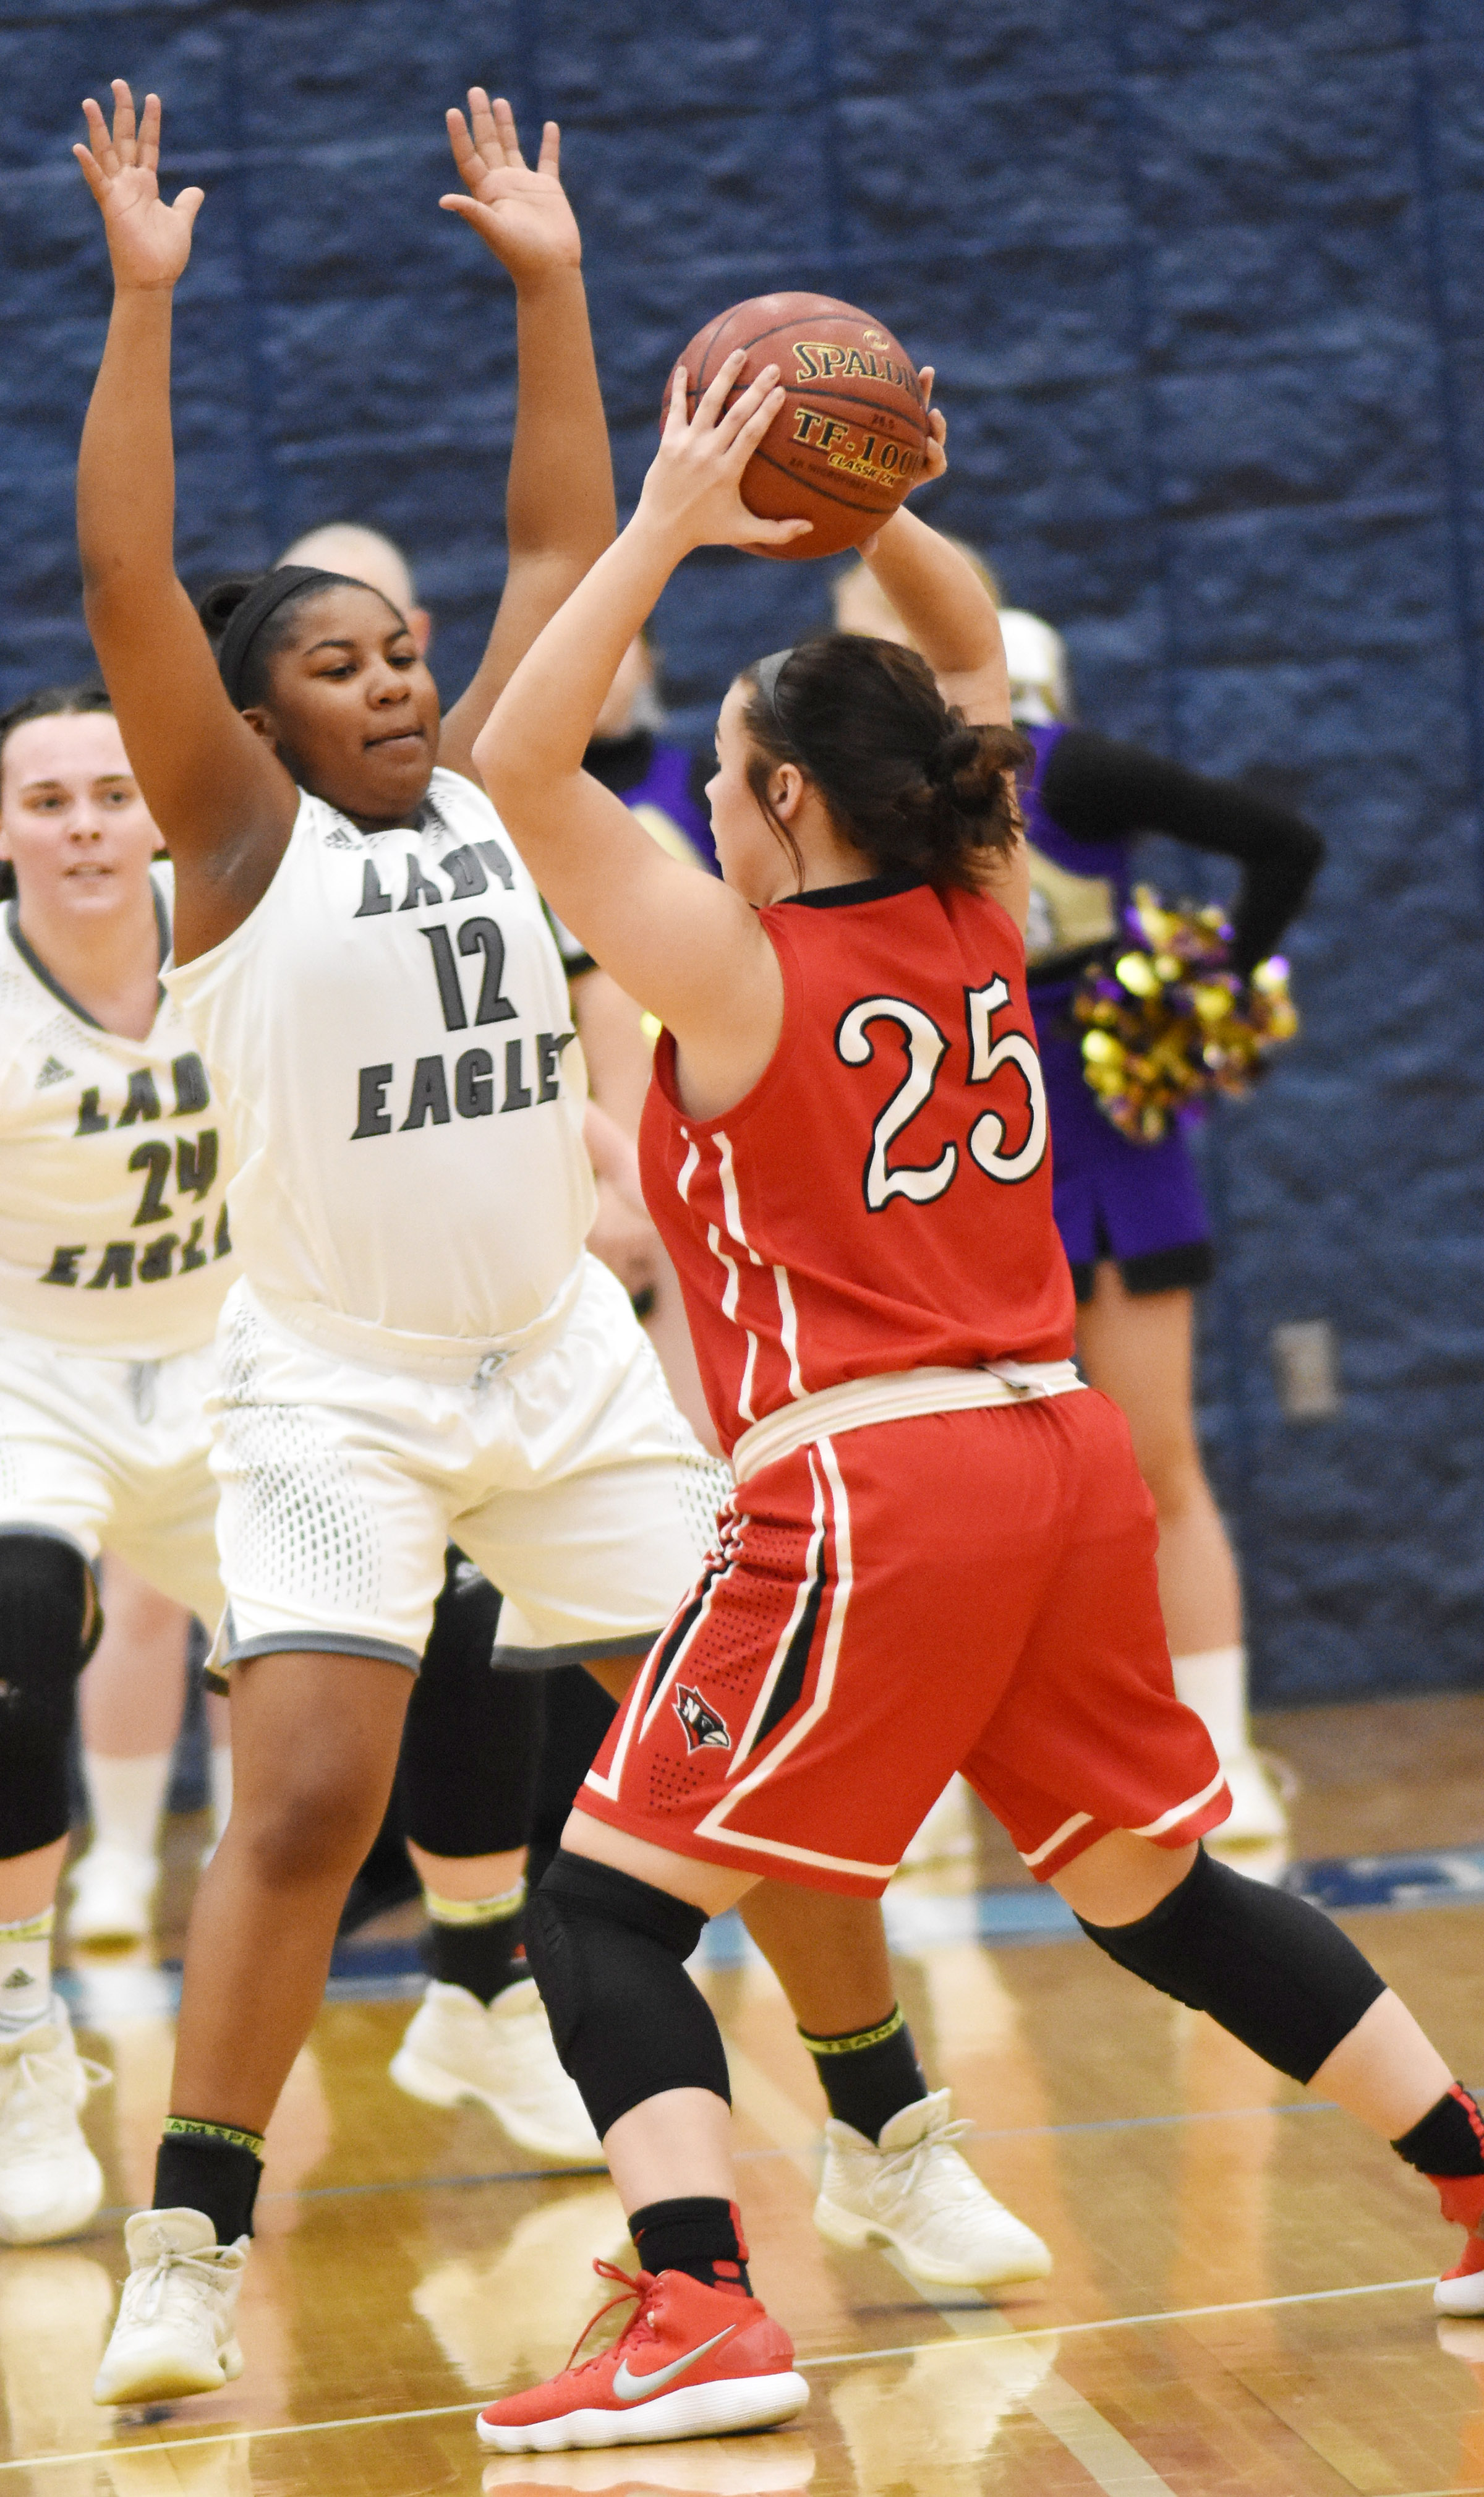 CHS senior Kiyah Barnett plays defense.